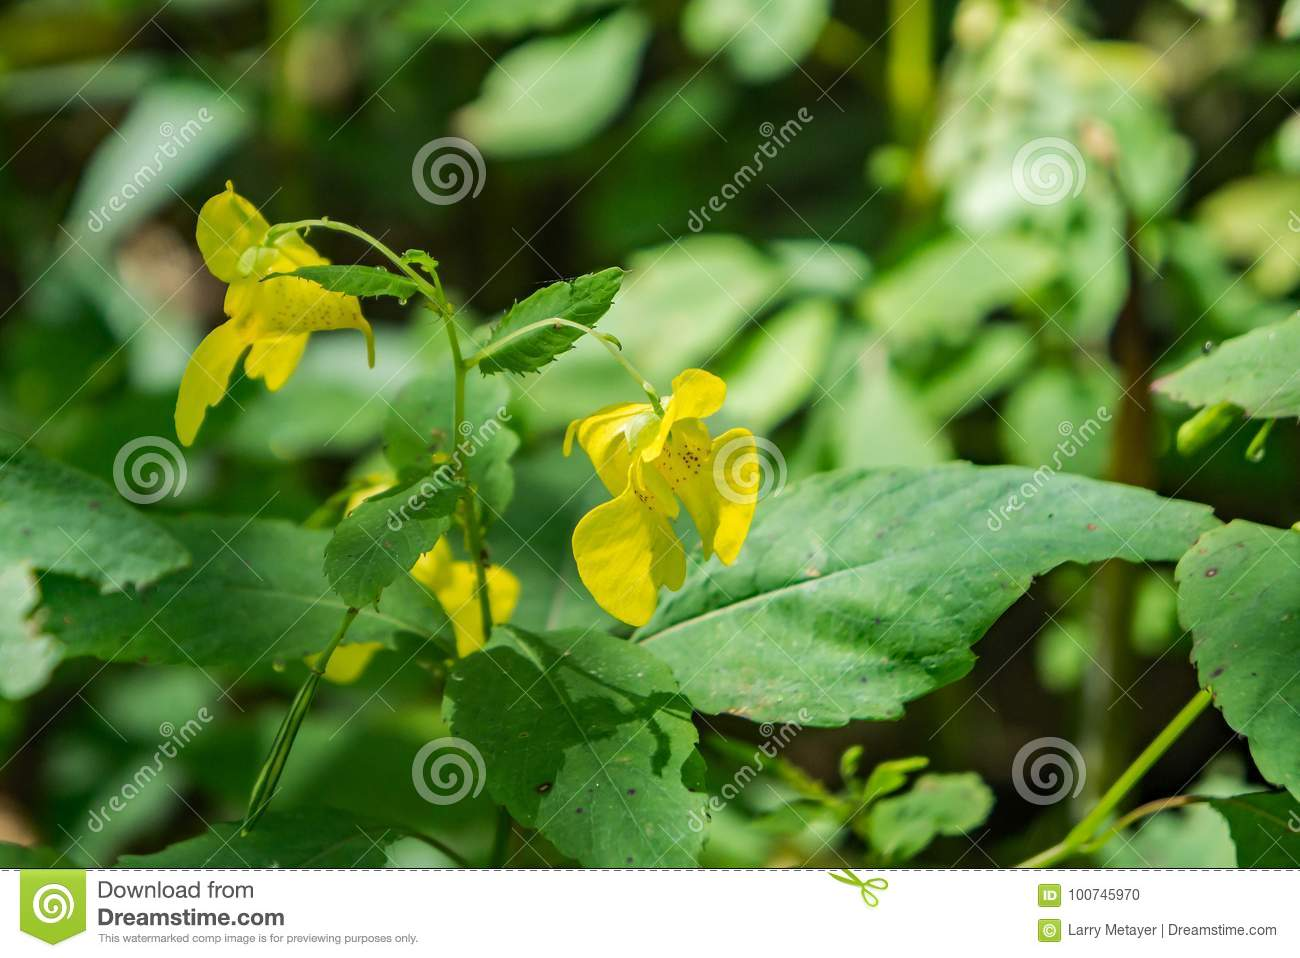 Pallida di impatiens del †giallo del Jewelweed ""